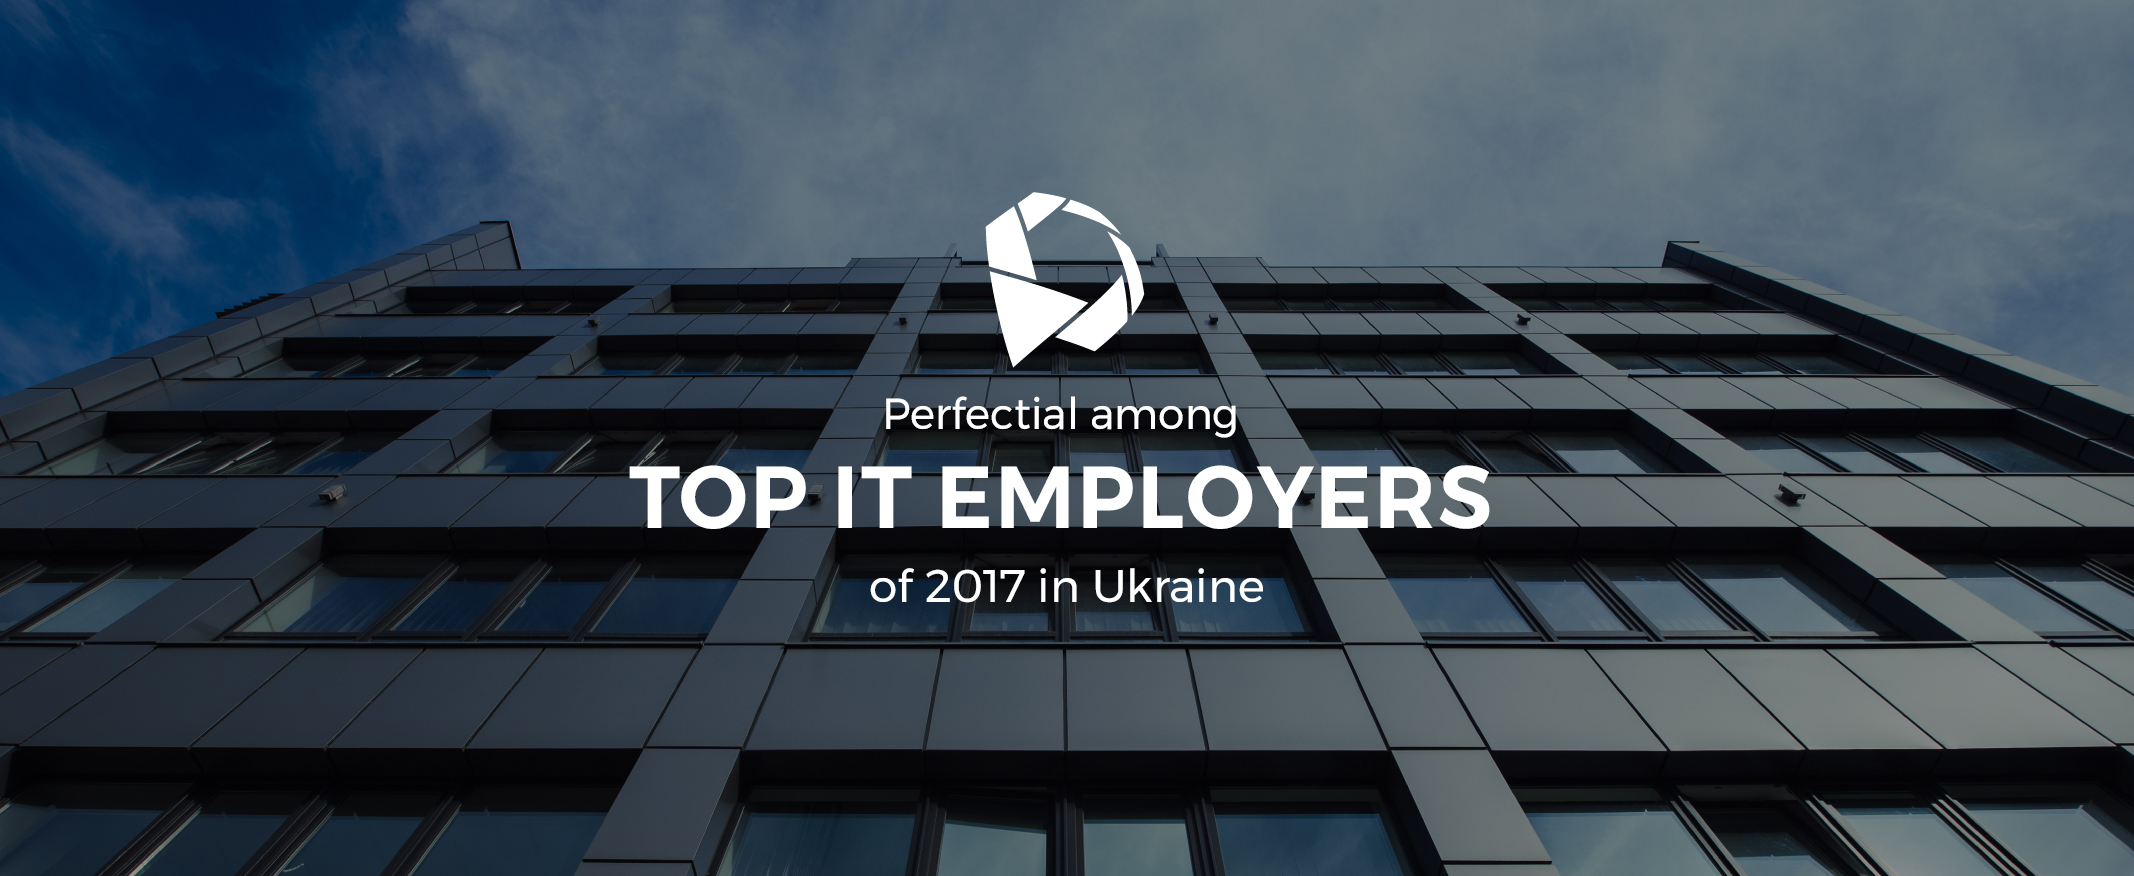 Perfectial Among Top IT Employers of 2017 in Ukraine